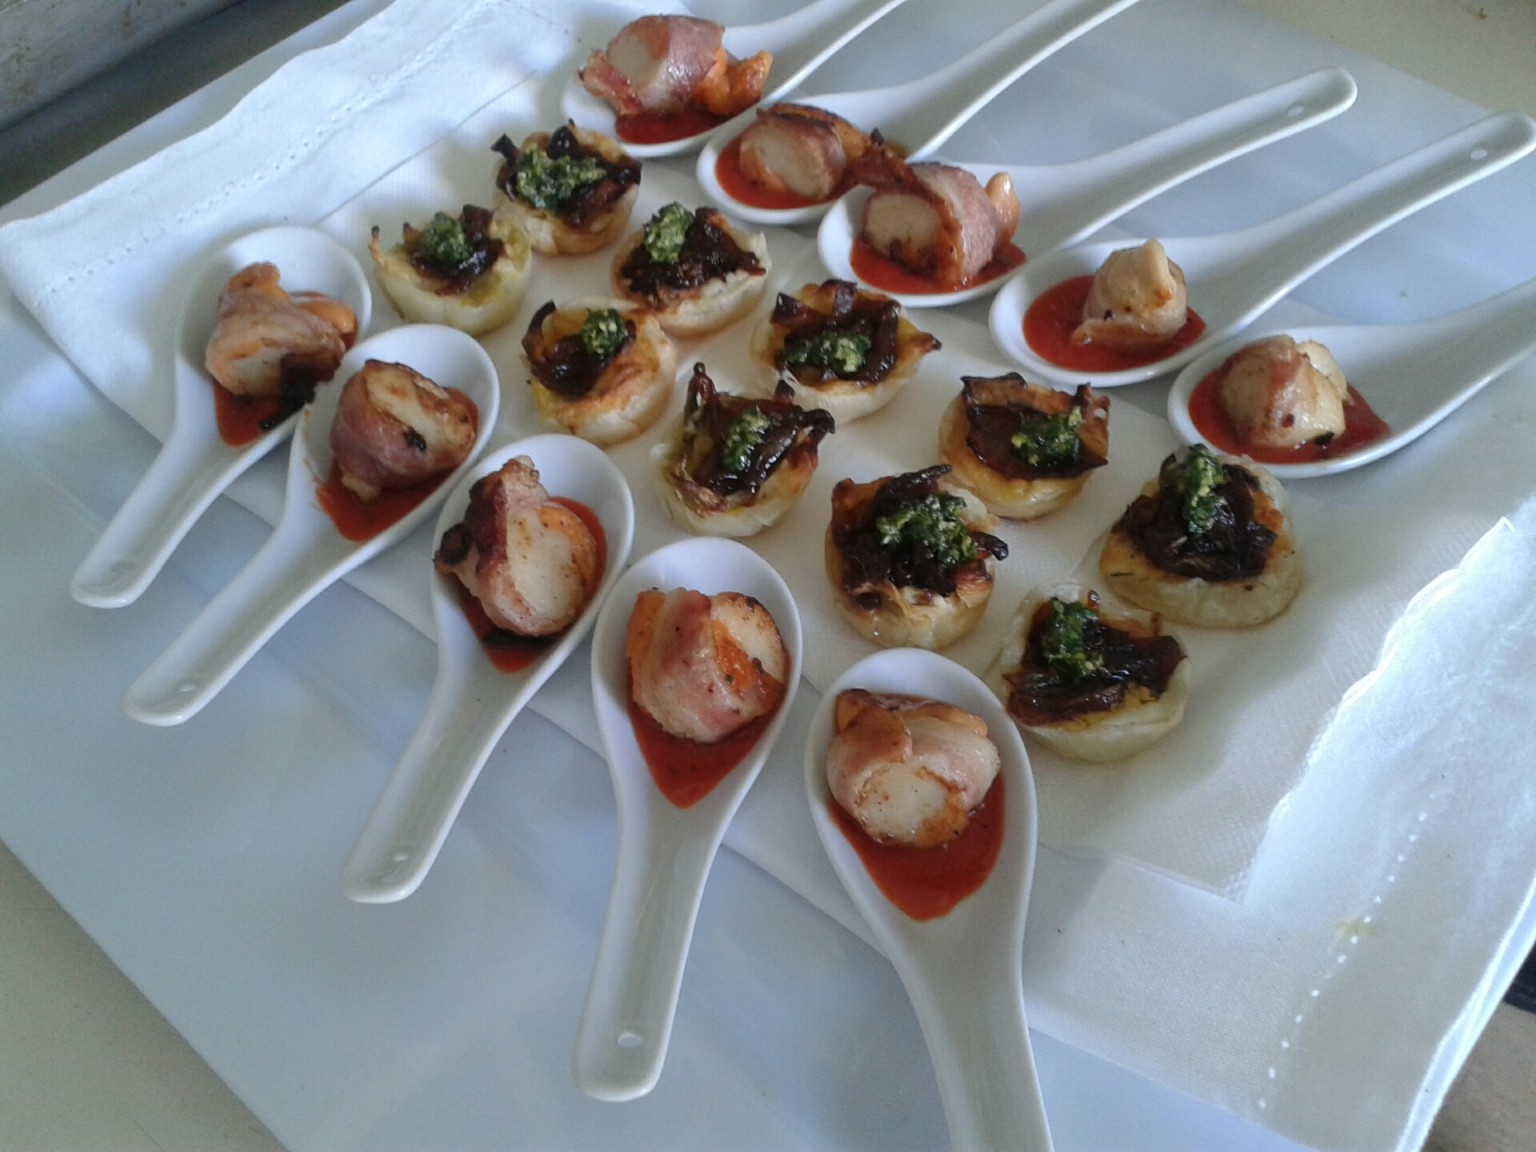 Canap s an elegant start for every wedding urban escargot for Canape examples